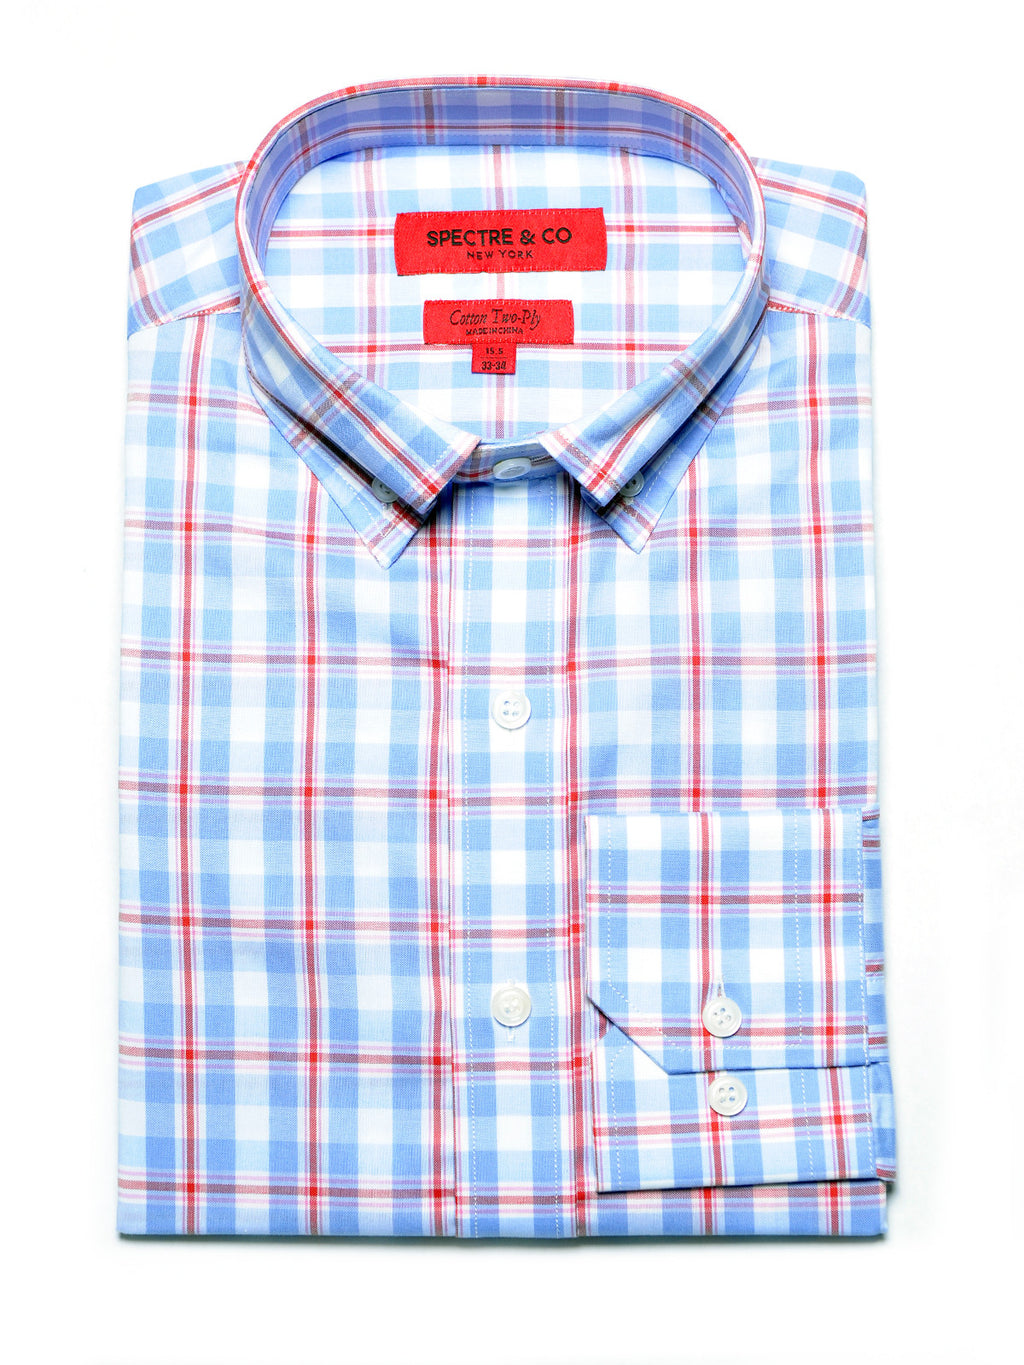 Whitmore Plaid Dress Shirt